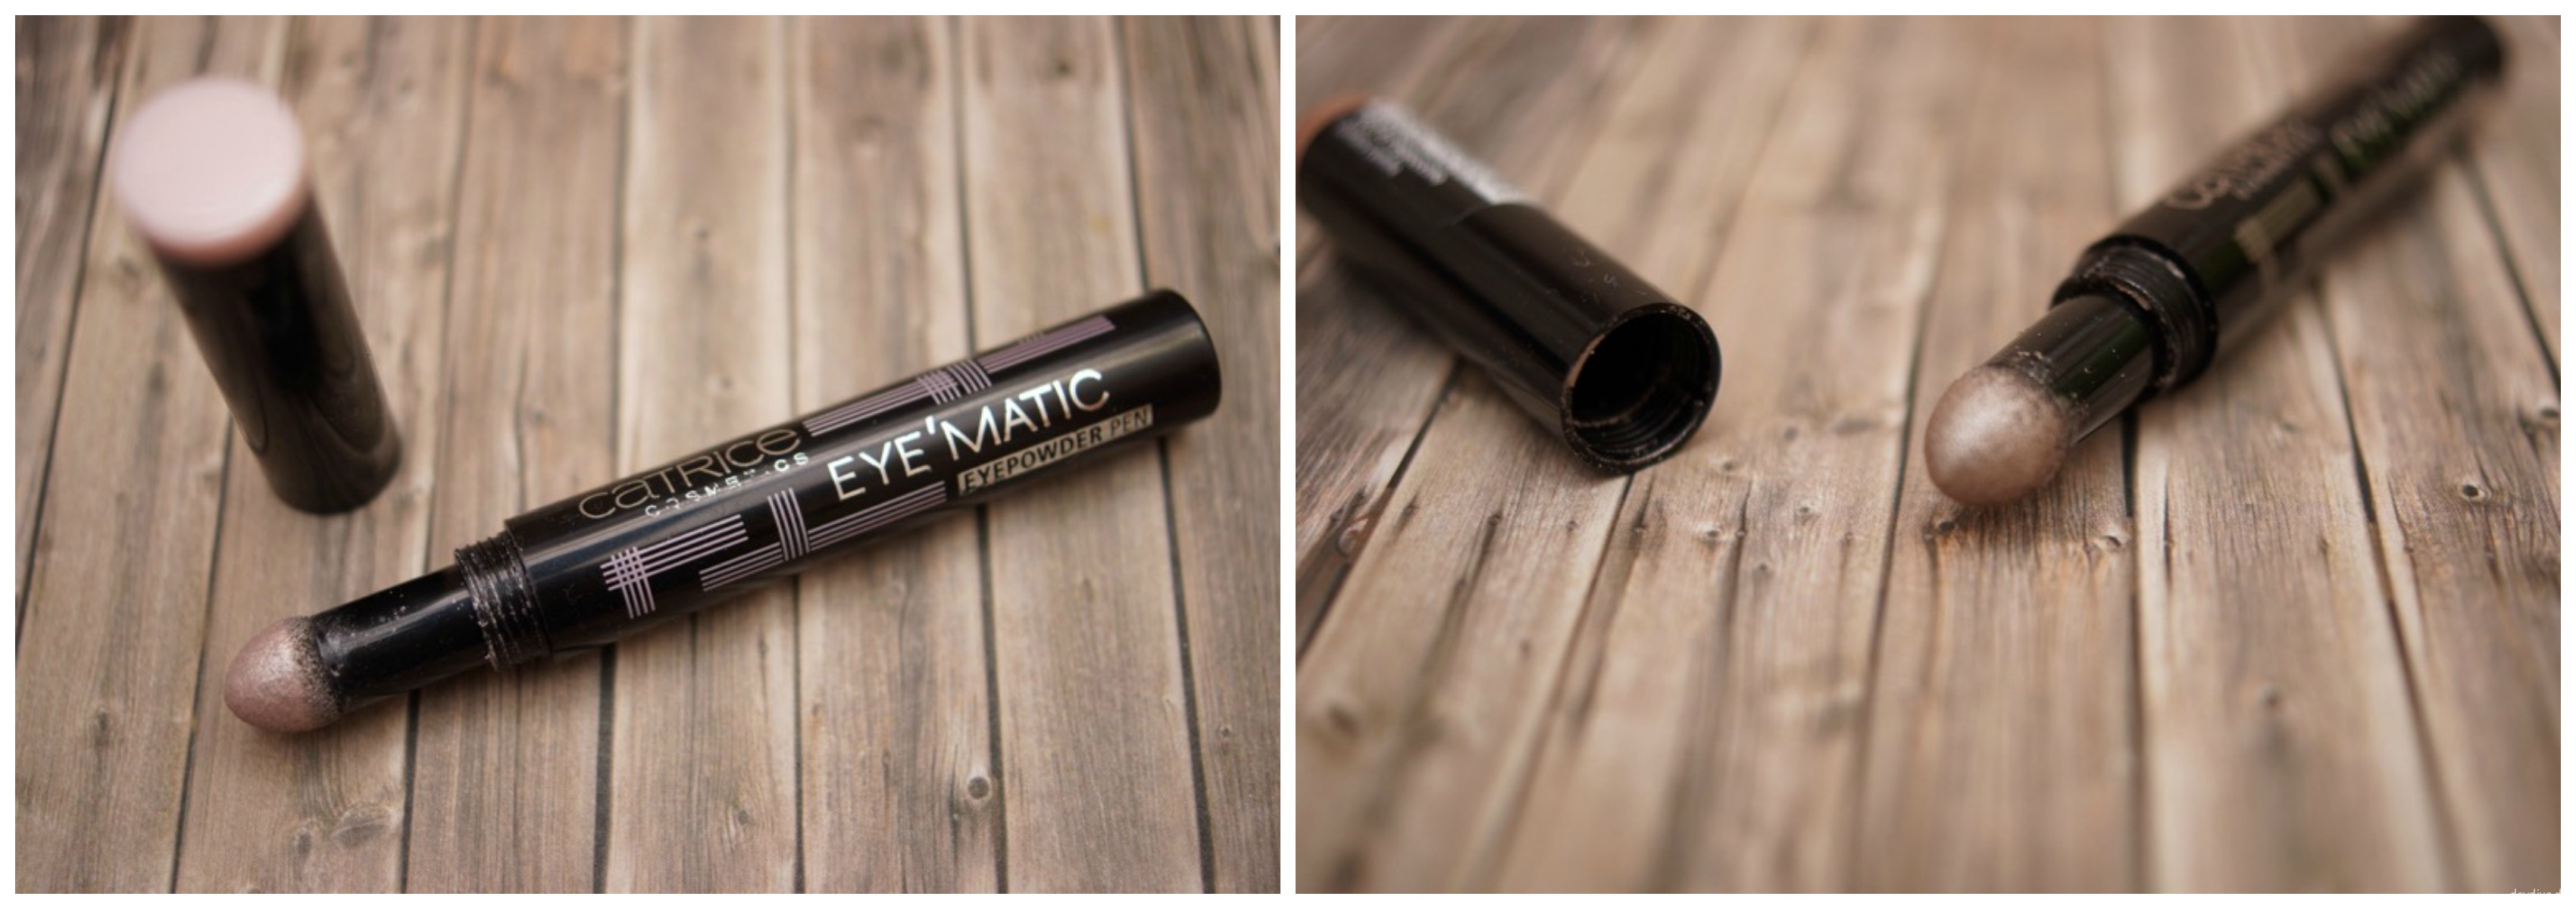 catrice eye matic pen offen